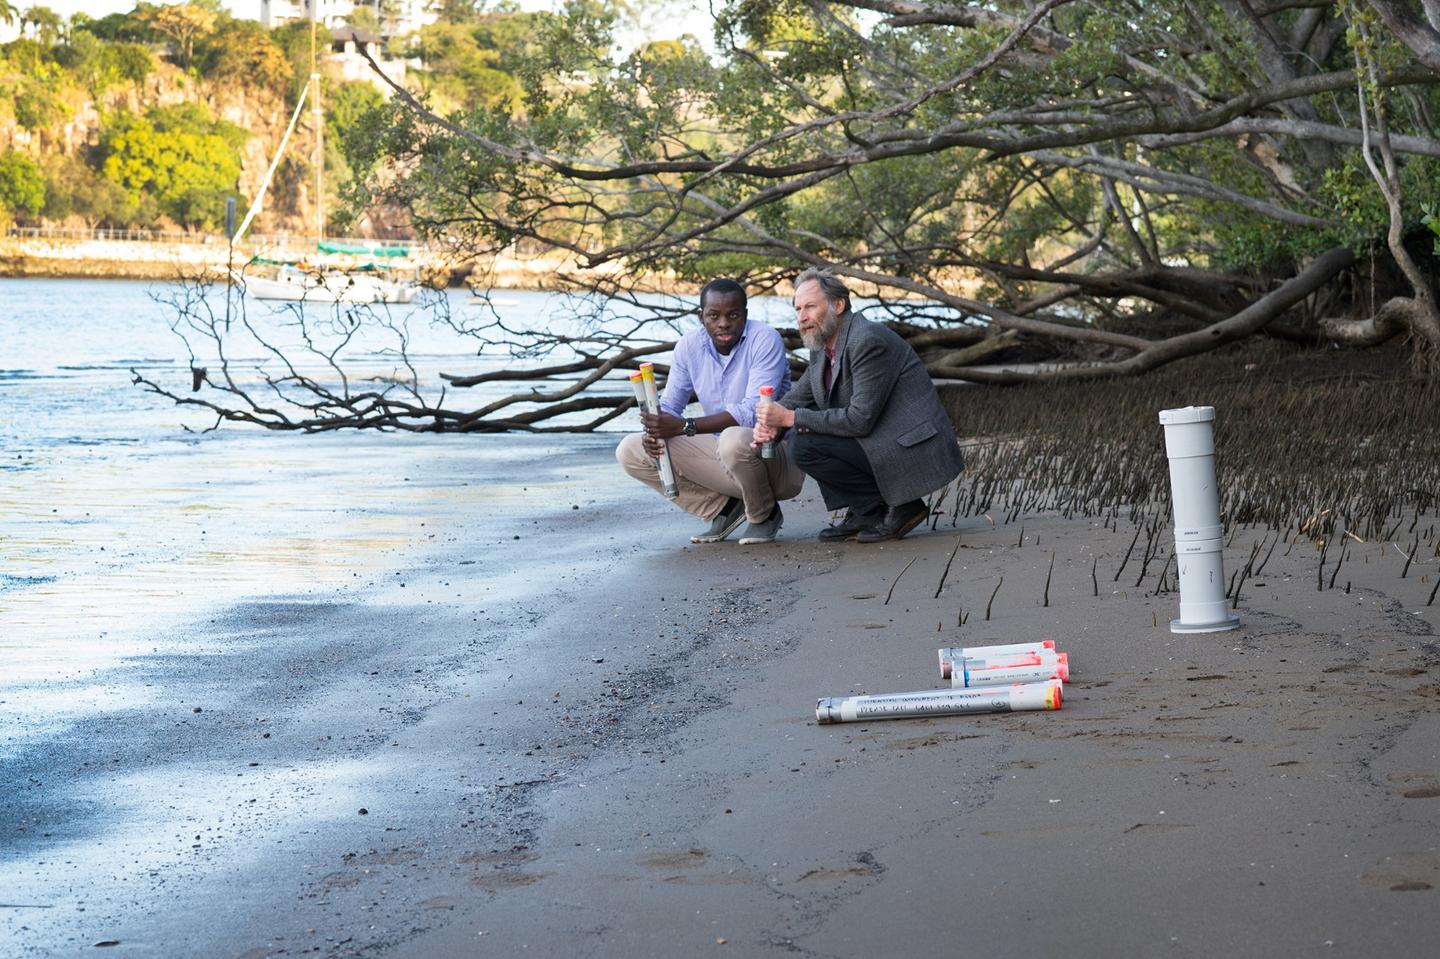 QUT researchers Dr Kabir Suara and Professor Richard Brown with their Drifter device